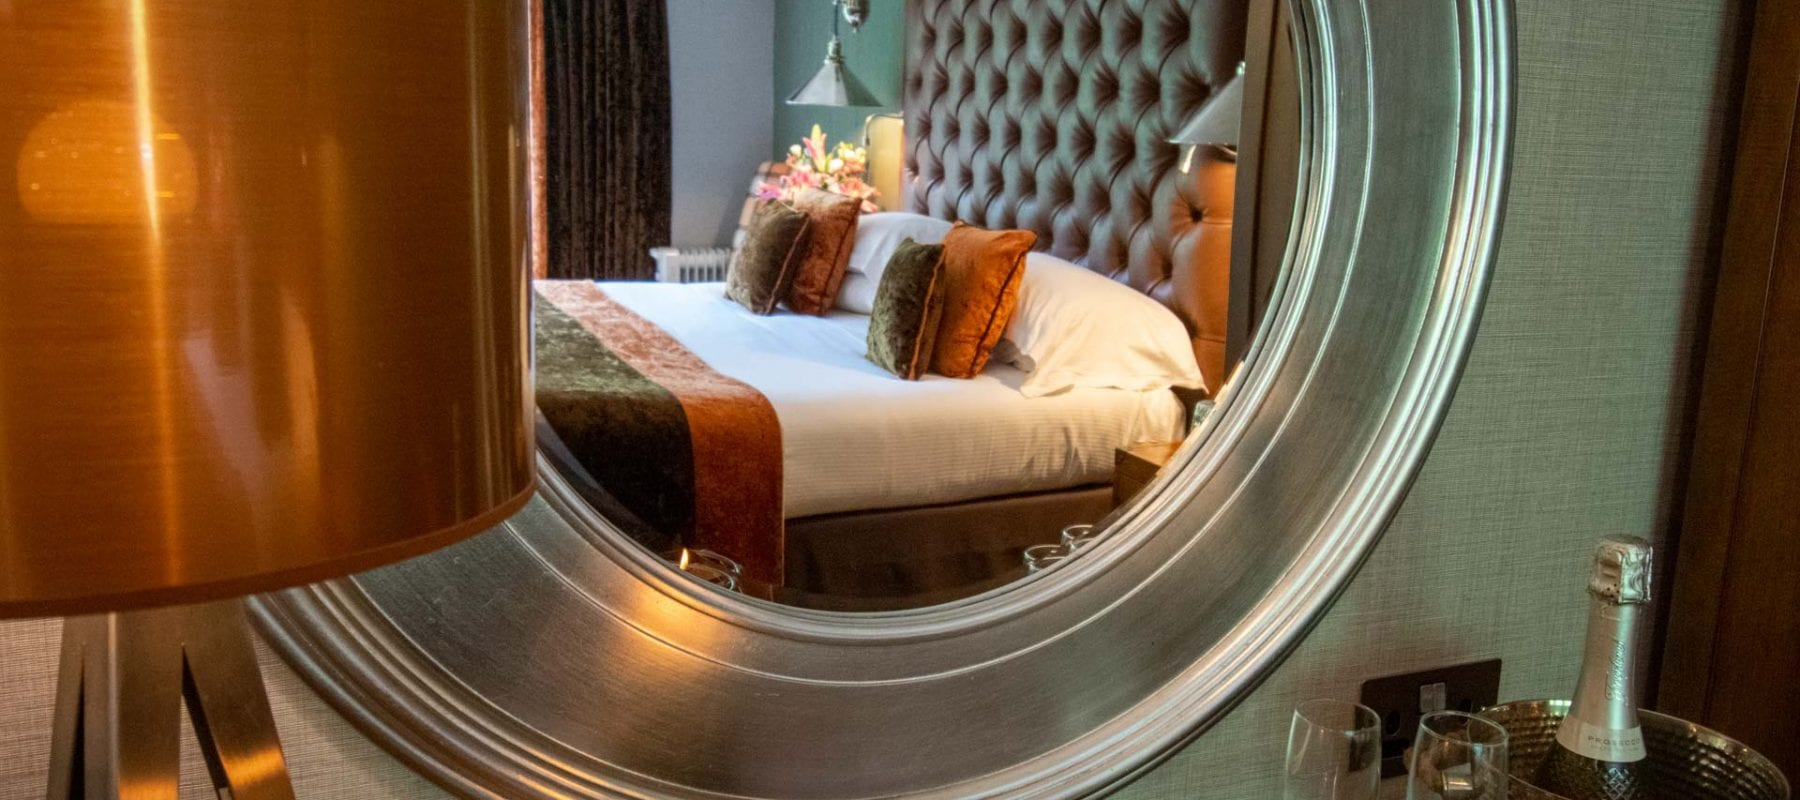 Luxury rooms to relax and unwind in